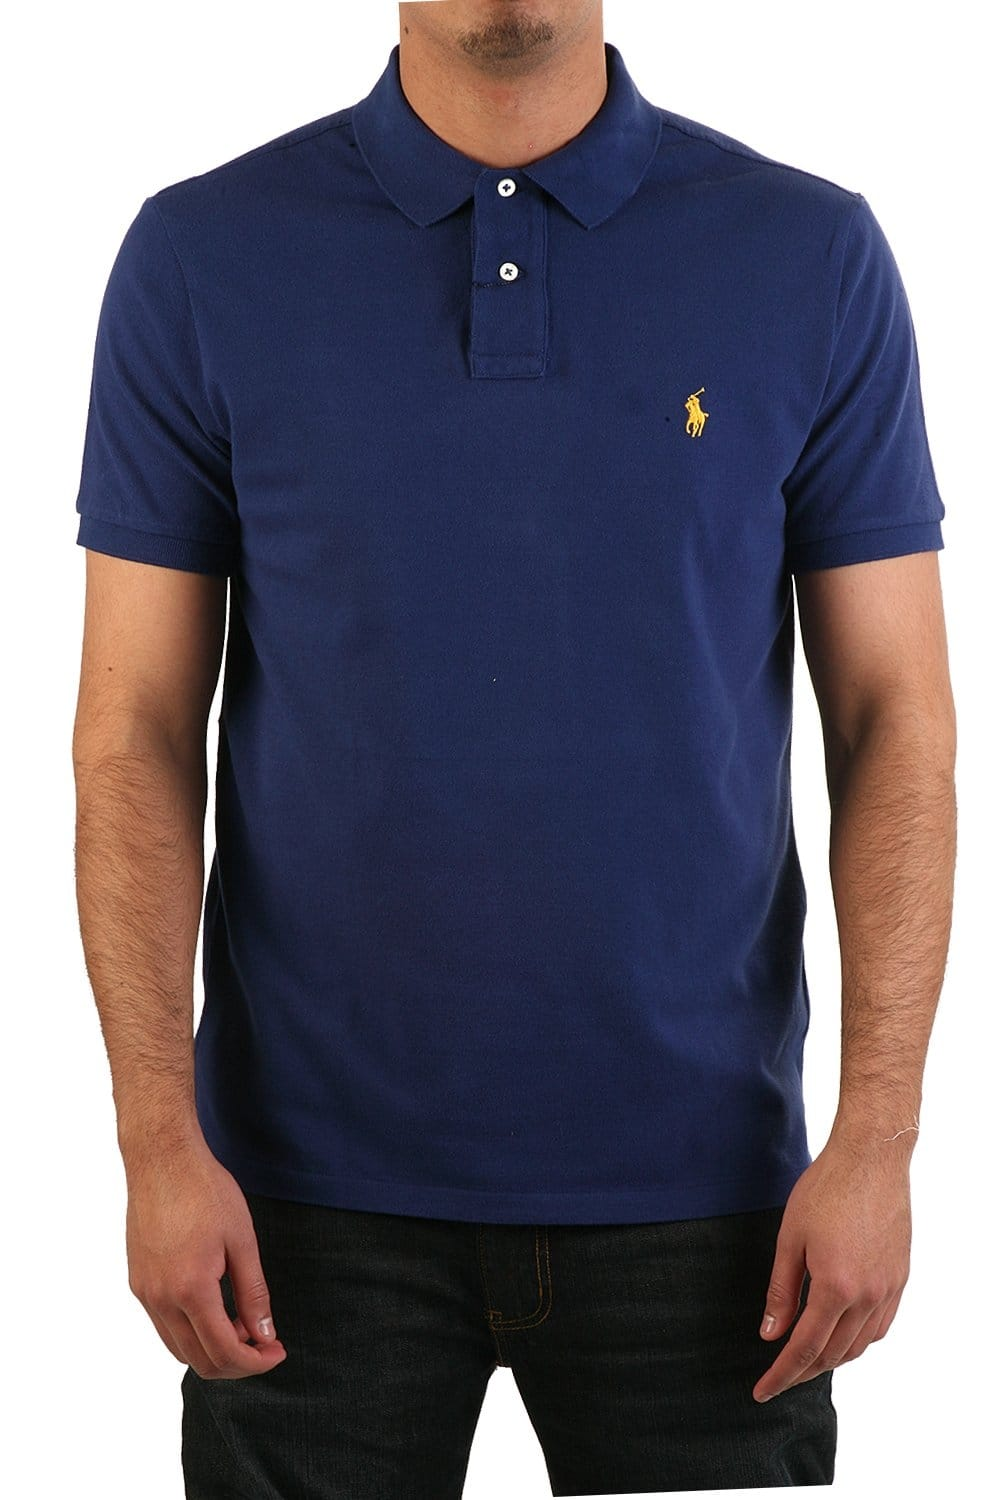 Polo Ralph Lauren Polo T Shirt In Royal Blue A12ks13mc0004